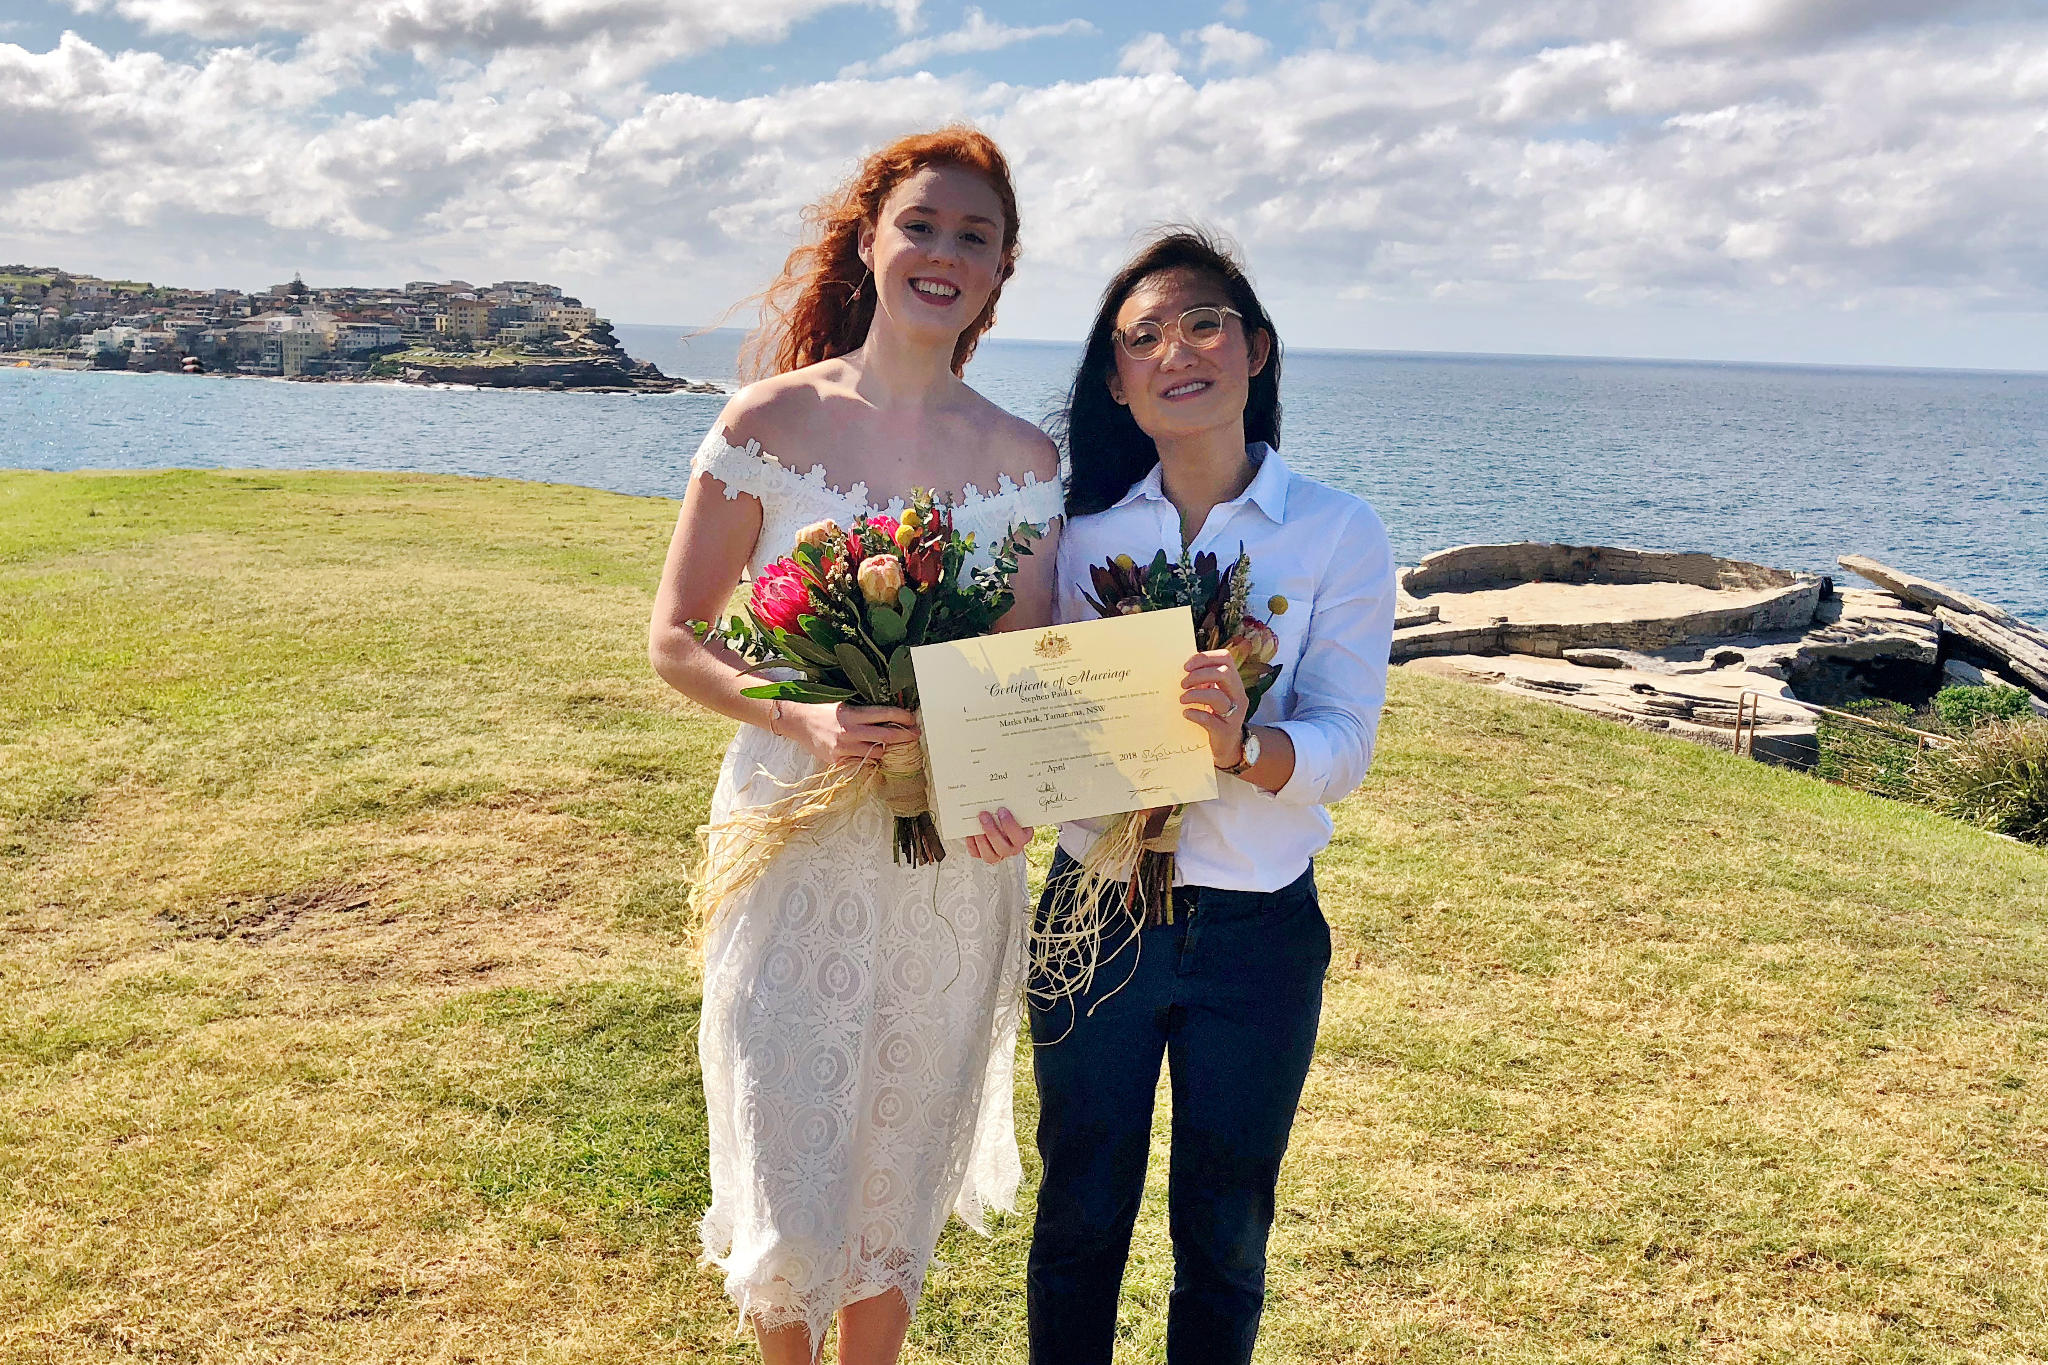 Bondi Same Sex Wedding V2 - Stephen Lee Sydney Marriage Celebrant